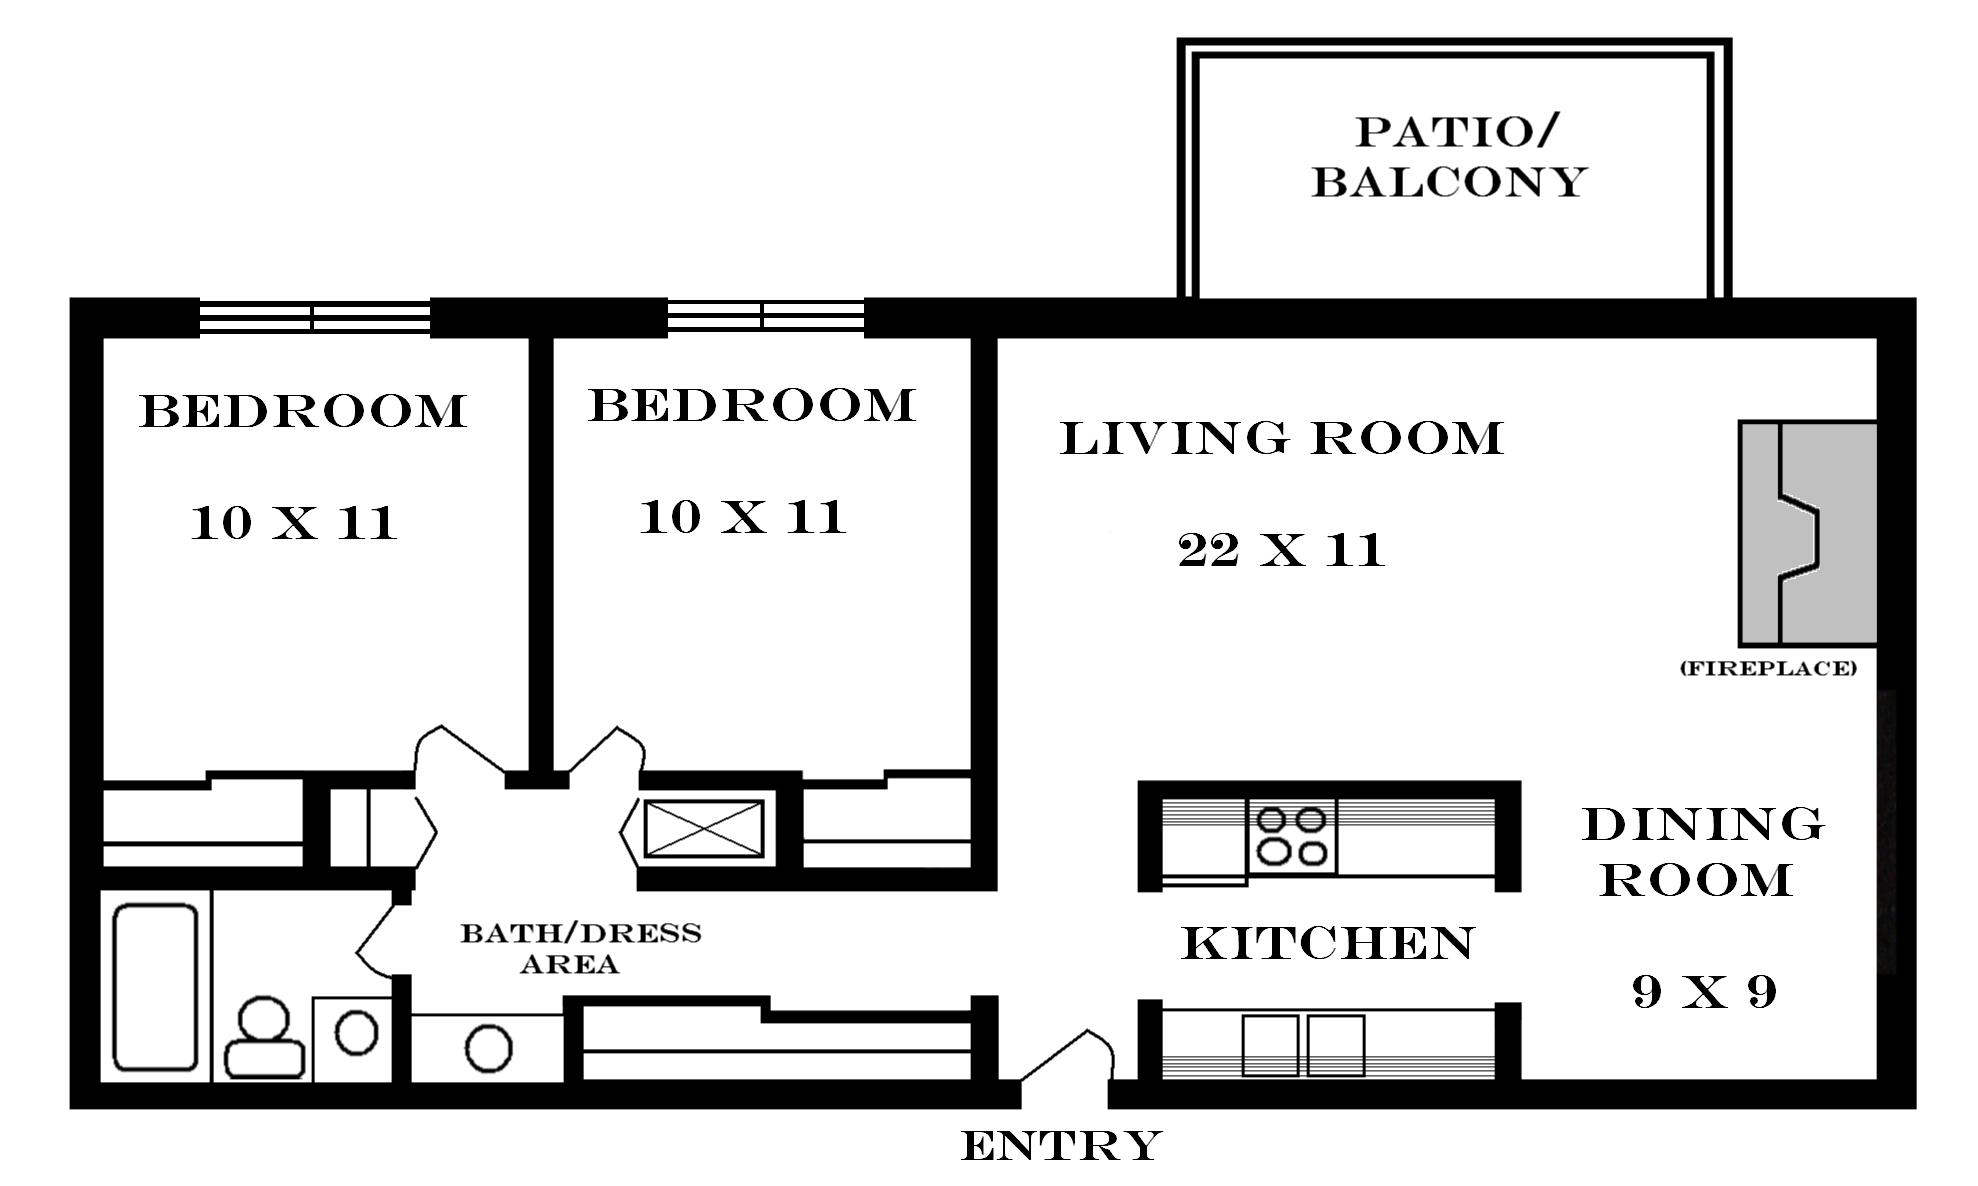 Lawrence apartments meadowbrook 2601 dover square for 2 bedroom apartment layout ideas